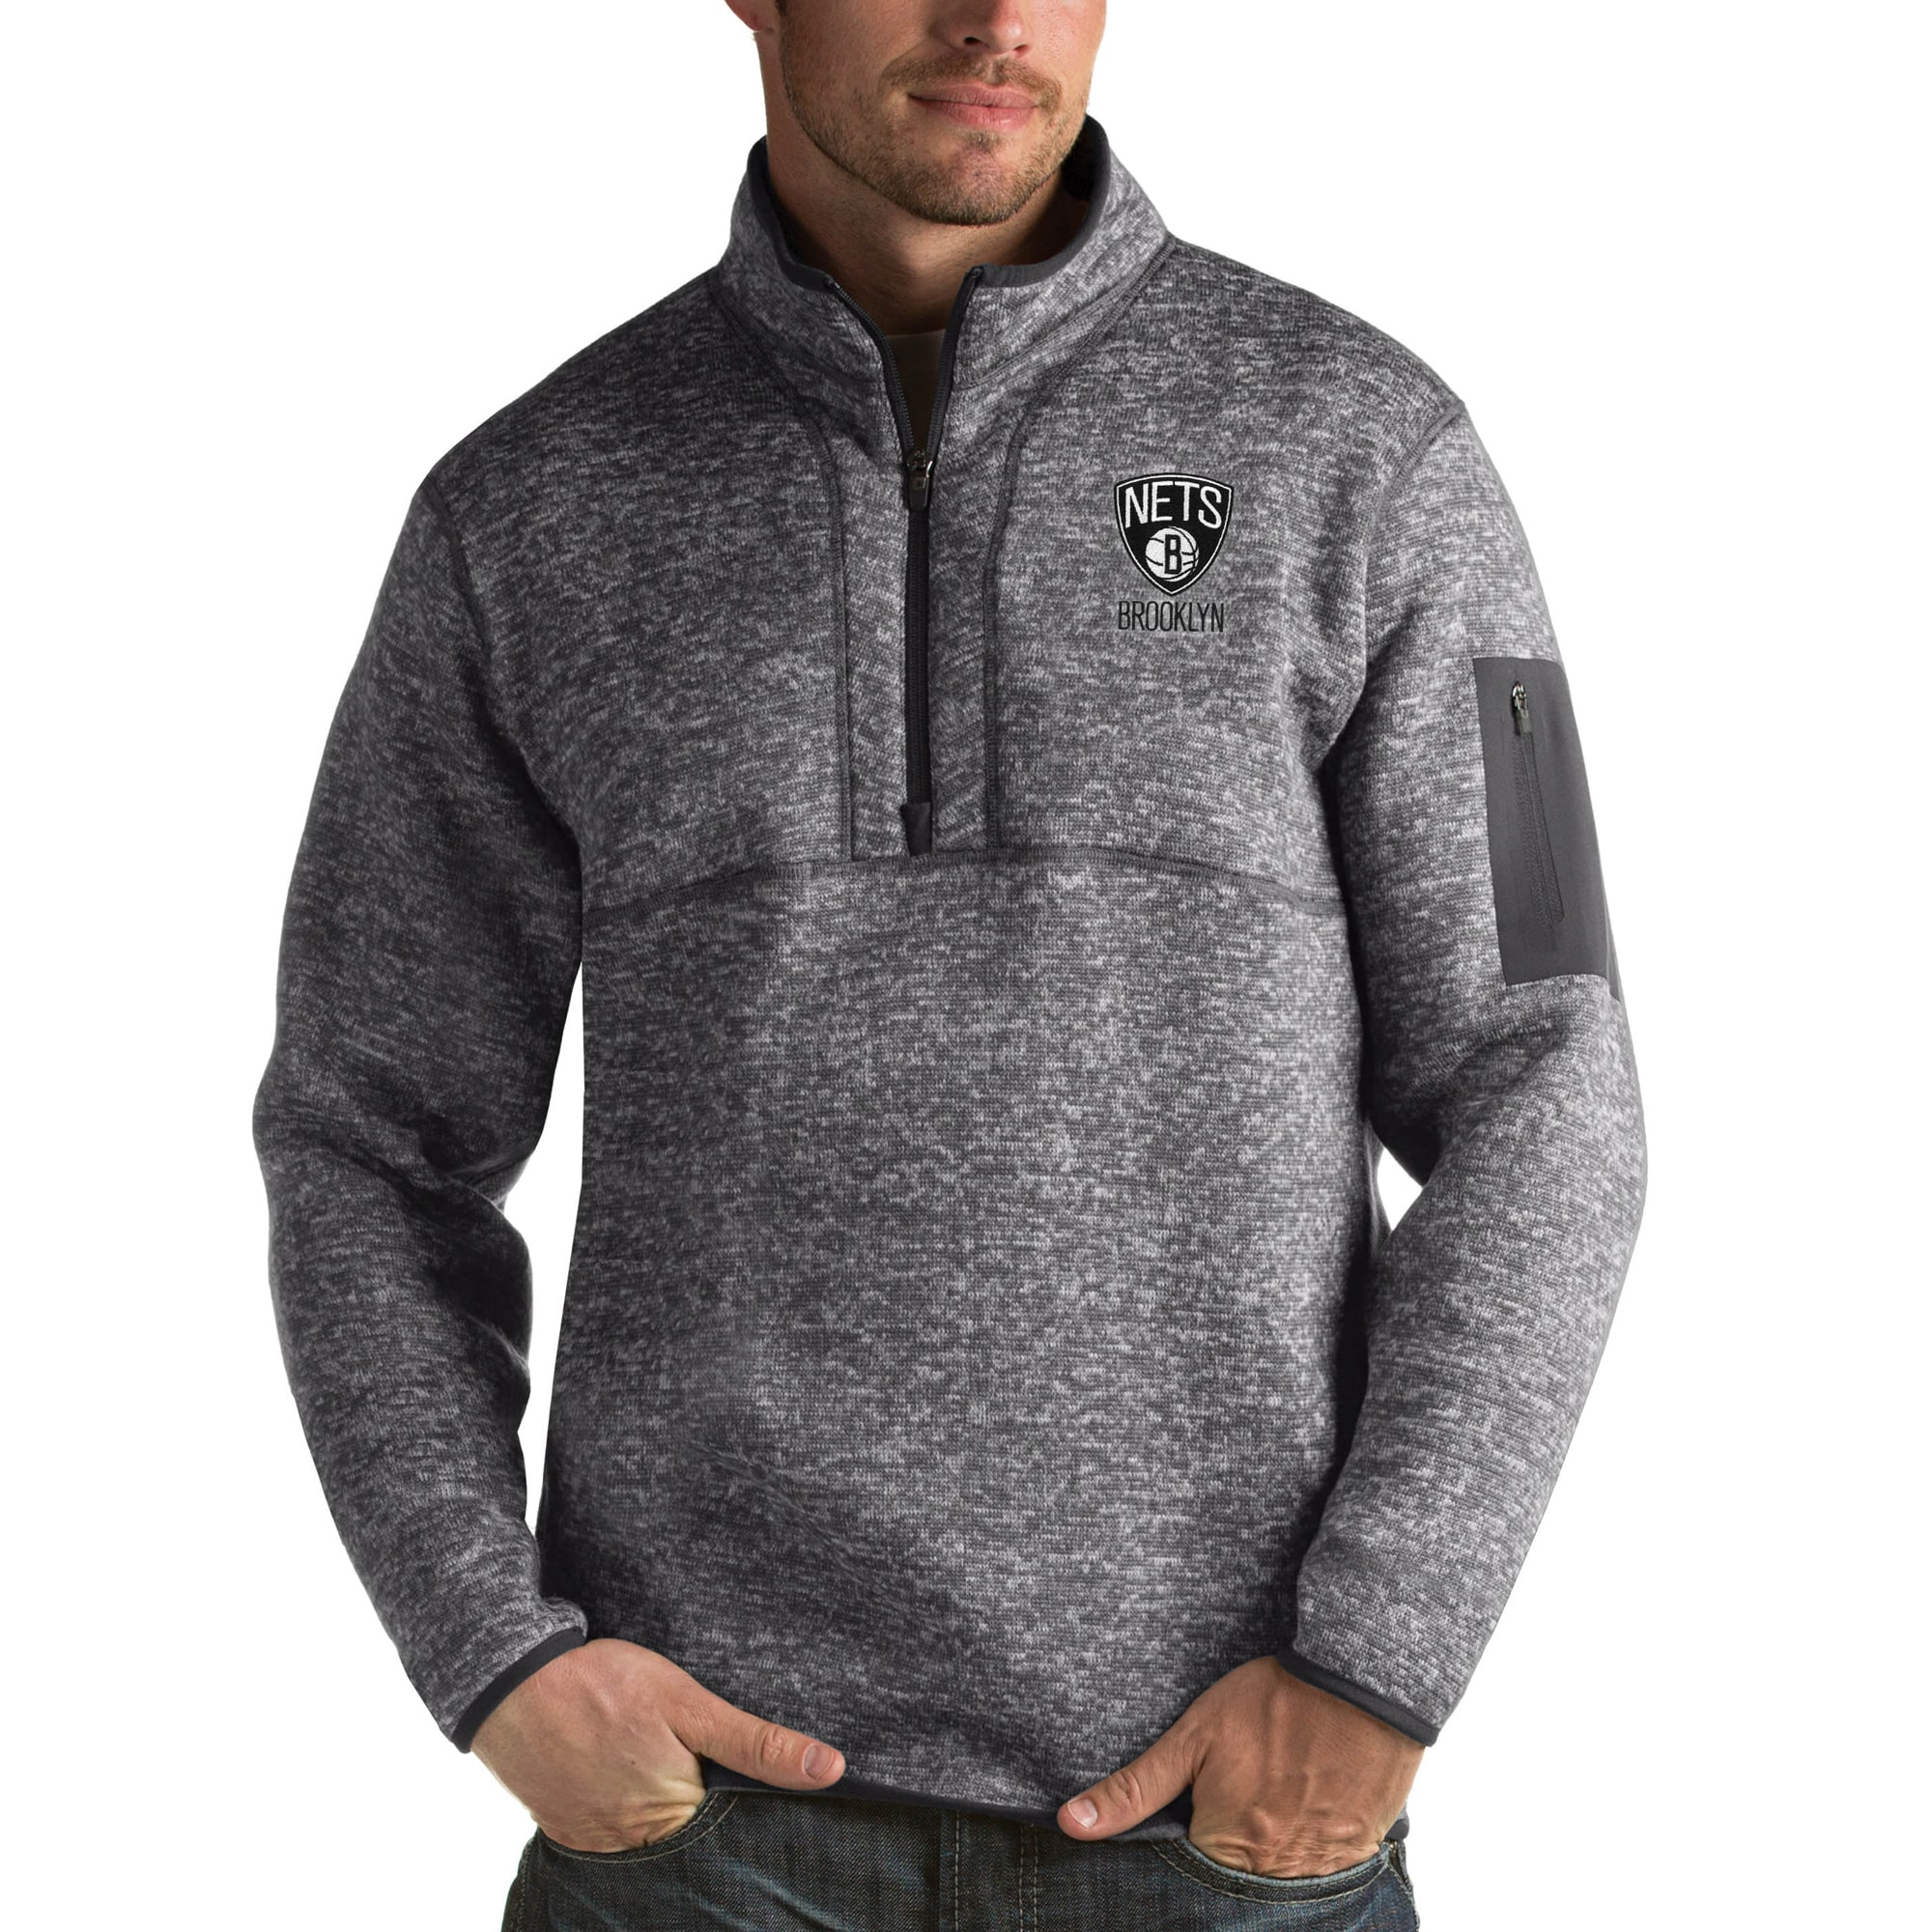 Brooklyn Nets Antigua Fortune Big & Tall Quarter-Zip Pullover Jacket - Charcoal